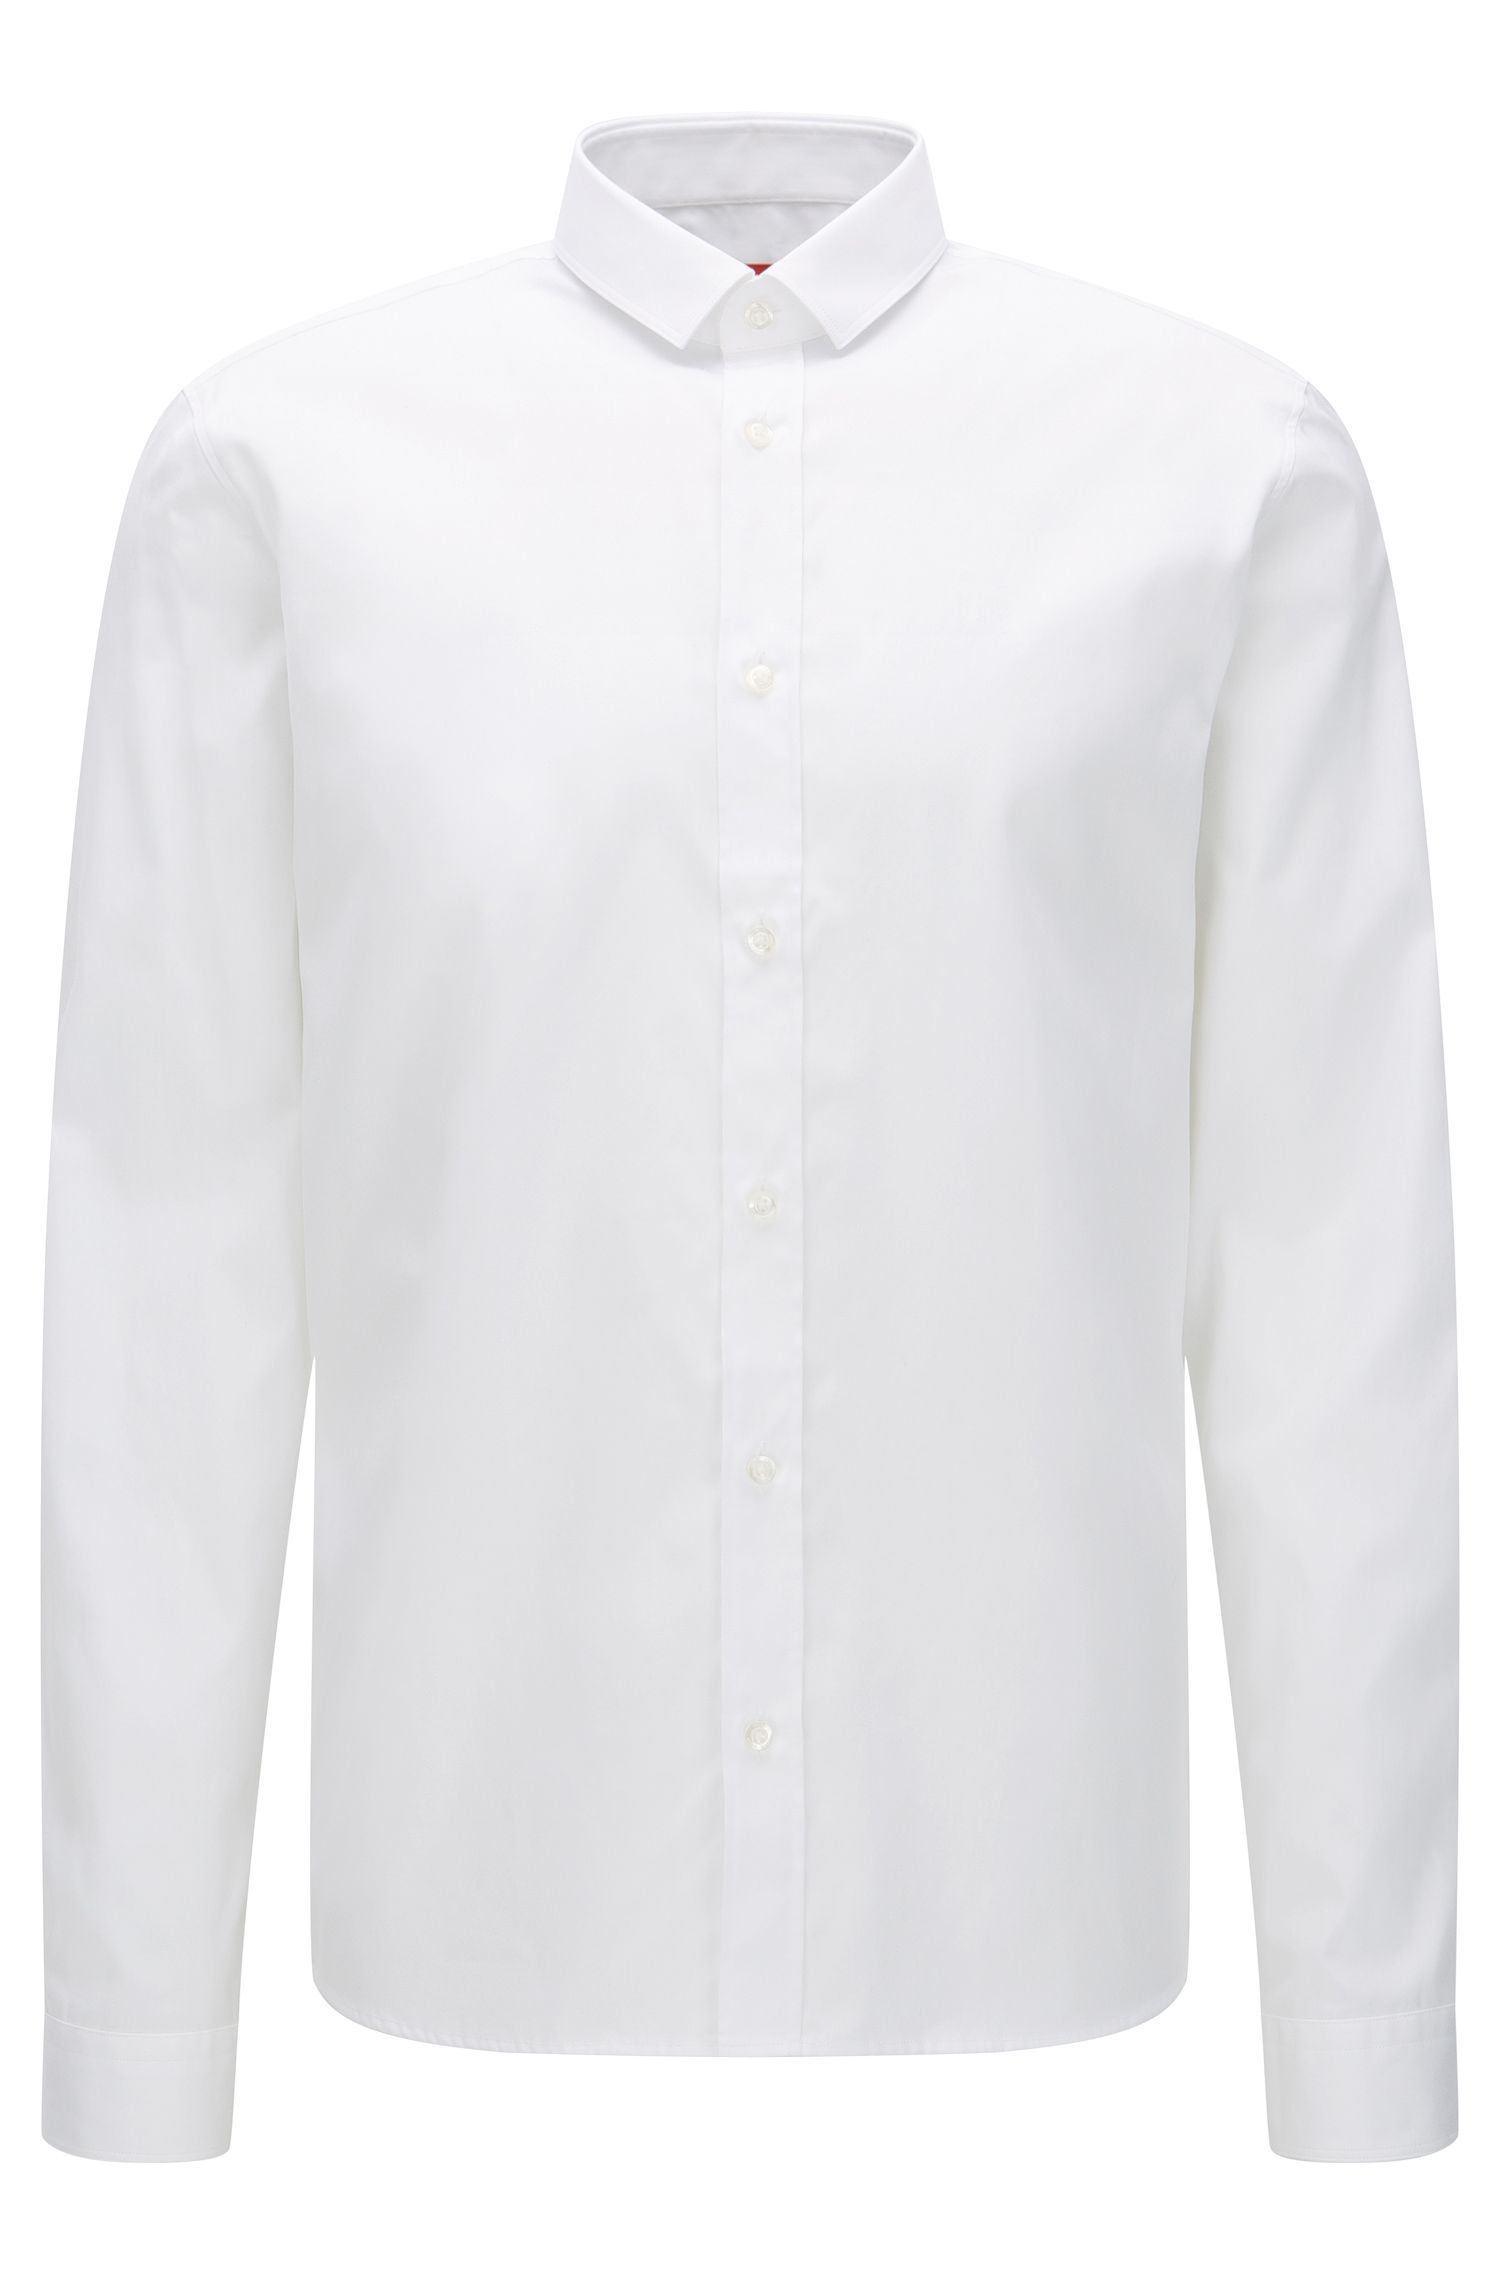 Cotton Zipper Button Down Shirt, Relaxed Fit | Ekong